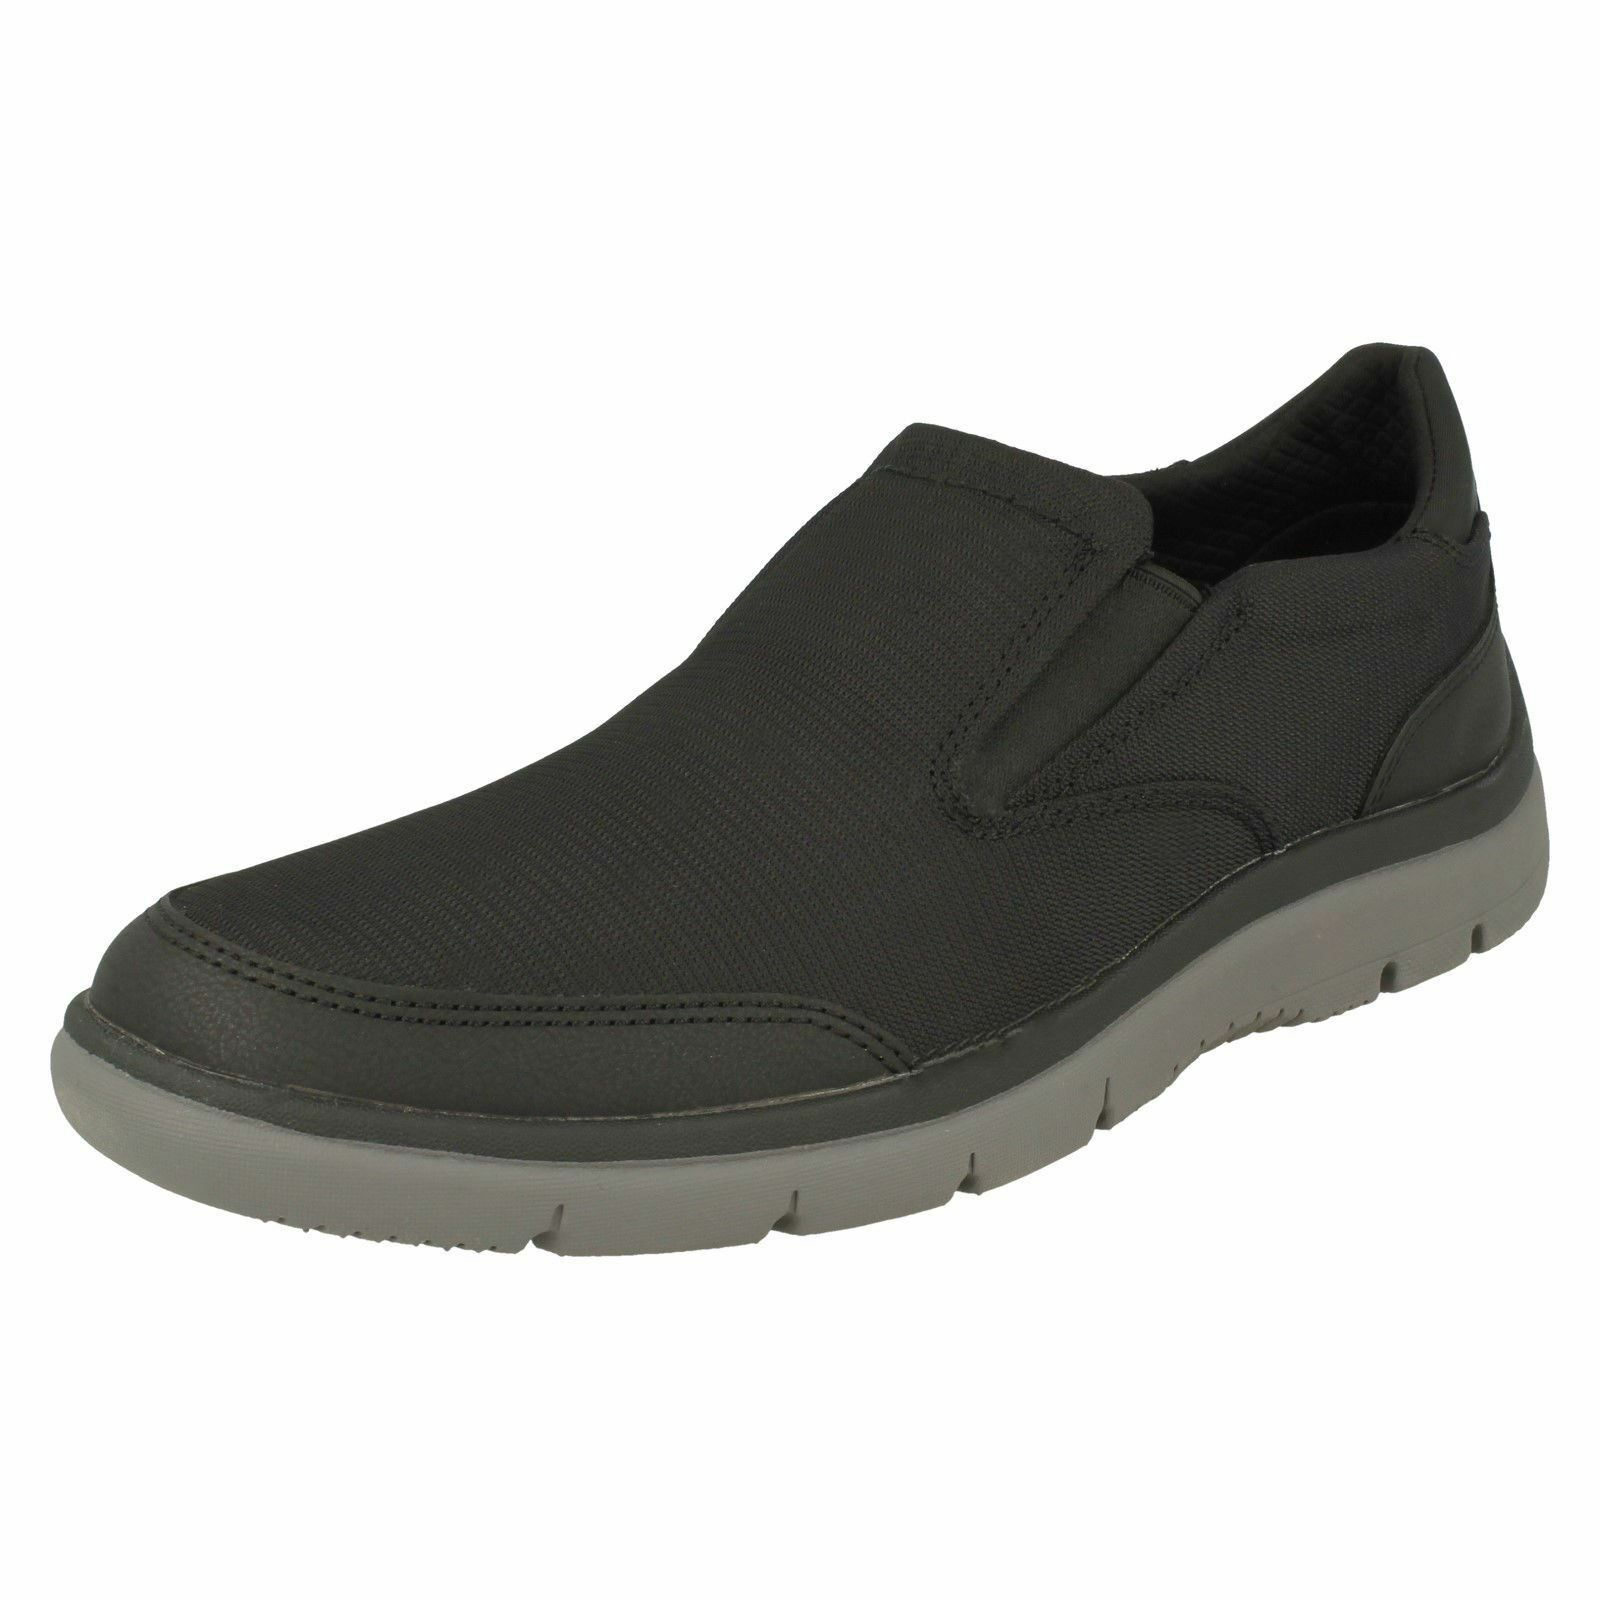 Mens Clarks Casual On Slip On Casual Trainers Tunsil Step 65148a